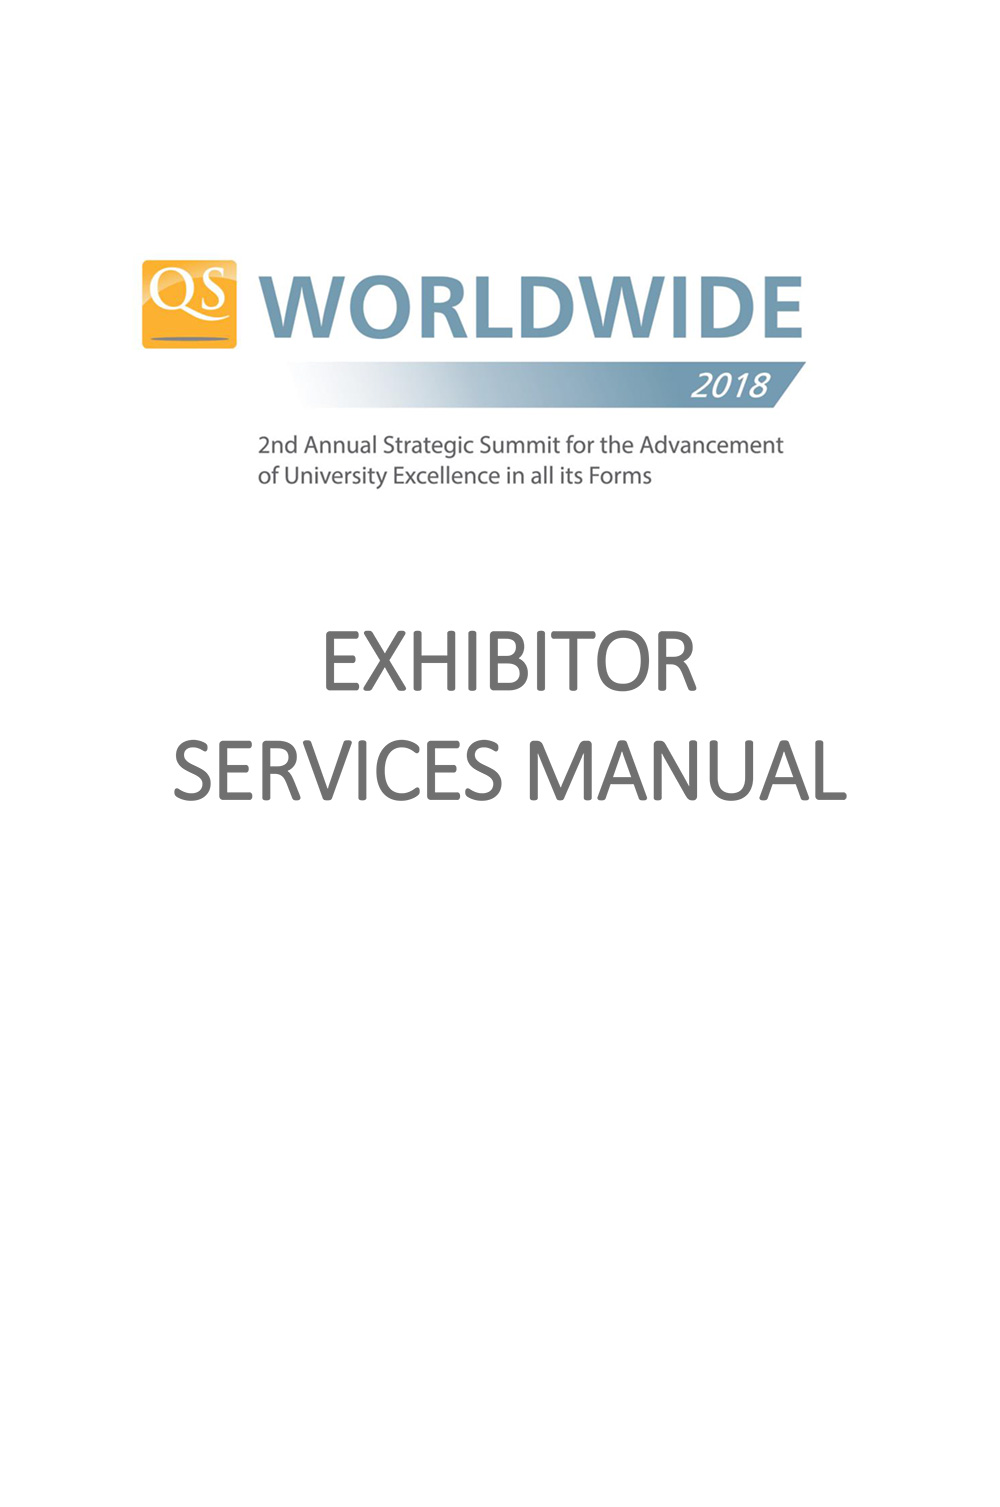 QS-Worldwide-2018---Exhibitor-Services-Manual-(-Working-File-)_2404-1